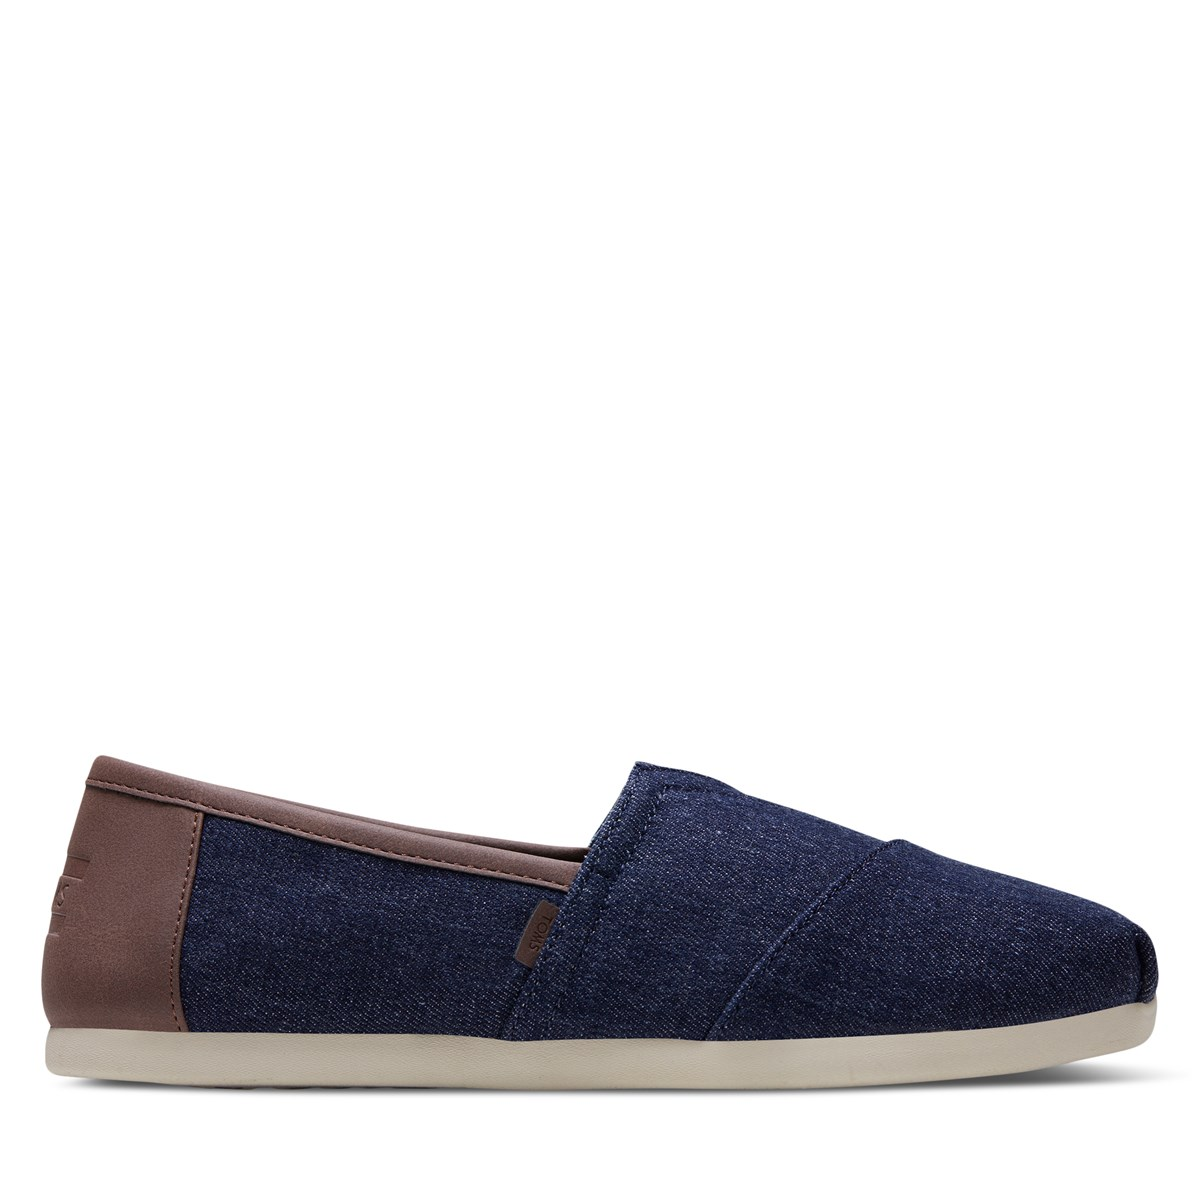 Men's Alpargata Synthetic Trim Slip-Ons in Denim Blue